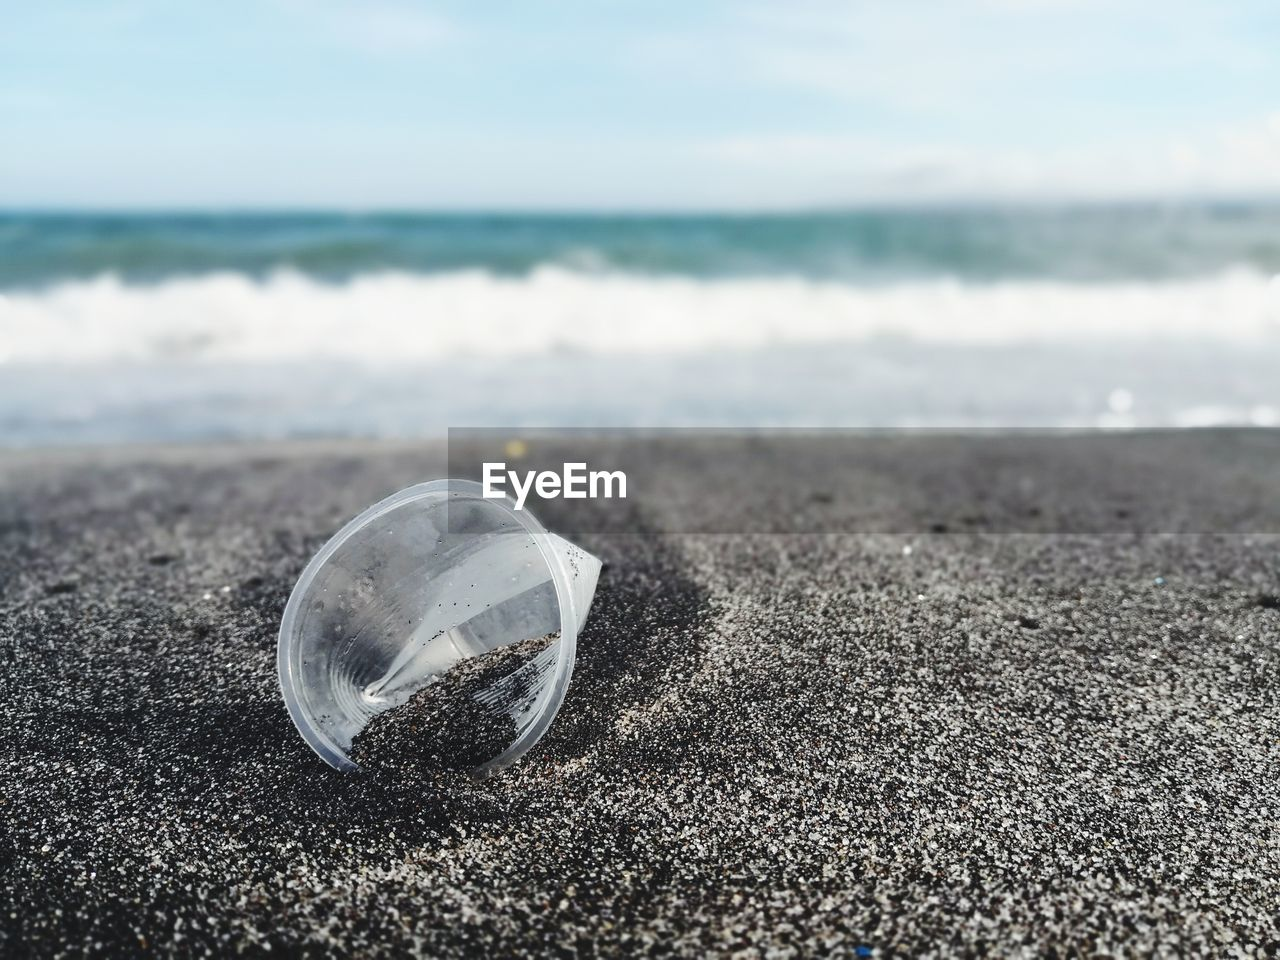 land, beach, sea, water, sky, nature, no people, sand, focus on foreground, day, glass - material, transparent, close-up, beauty in nature, horizon, horizon over water, outdoors, shell, tranquility